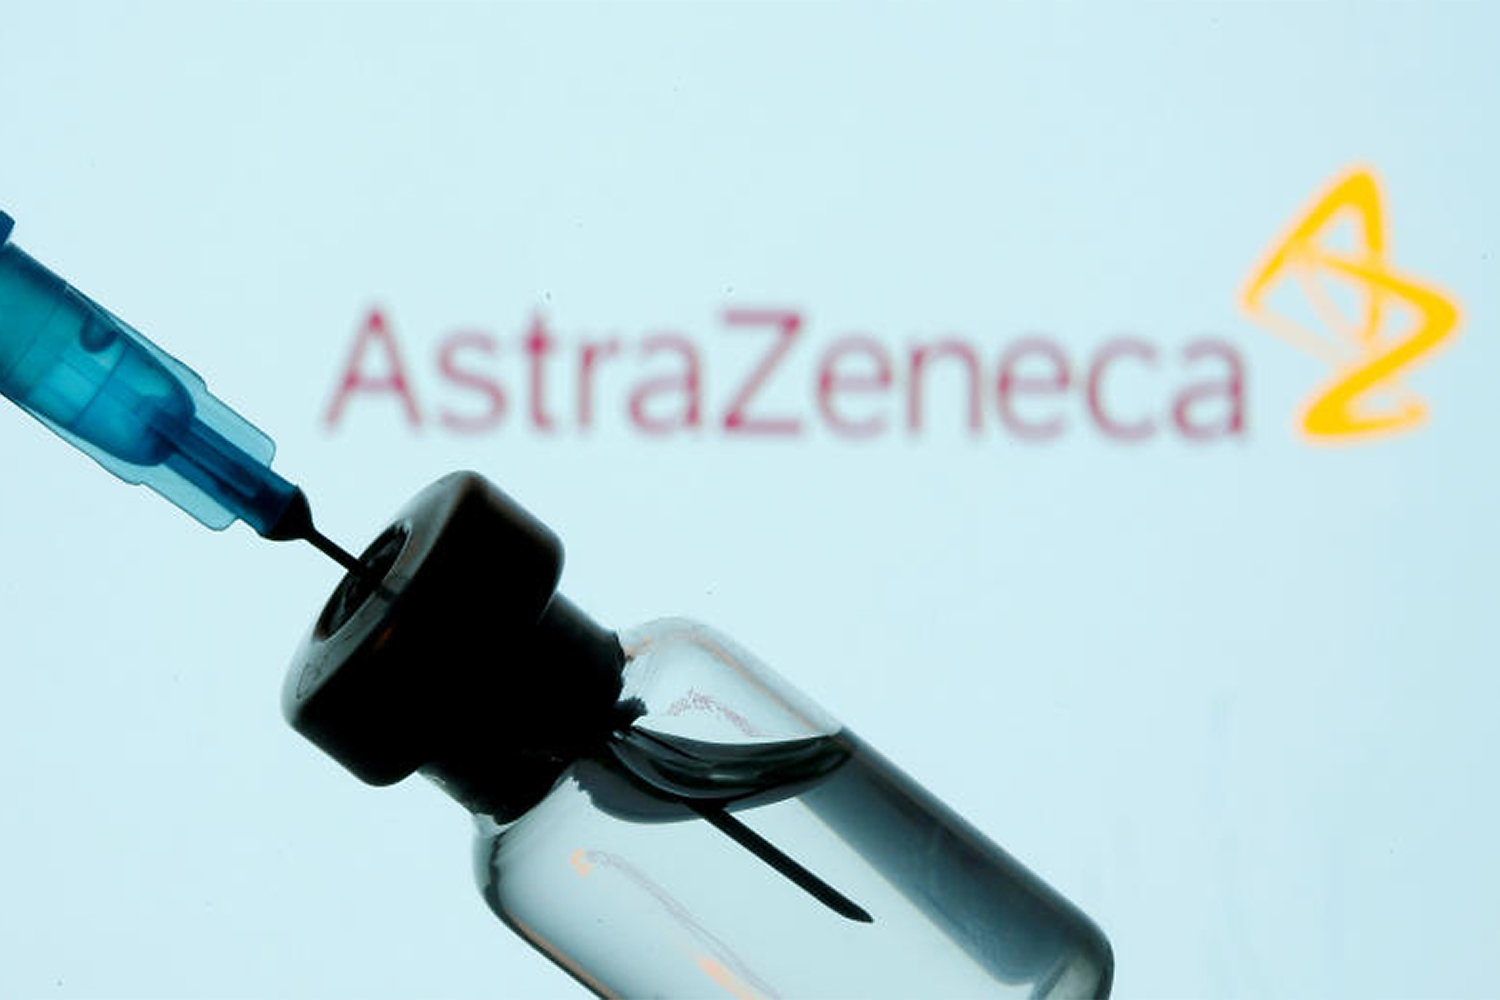 A vial and sryinge are seen in front of a displayed AstraZeneca logo on Jan 11, 2021. (Reuters photo)